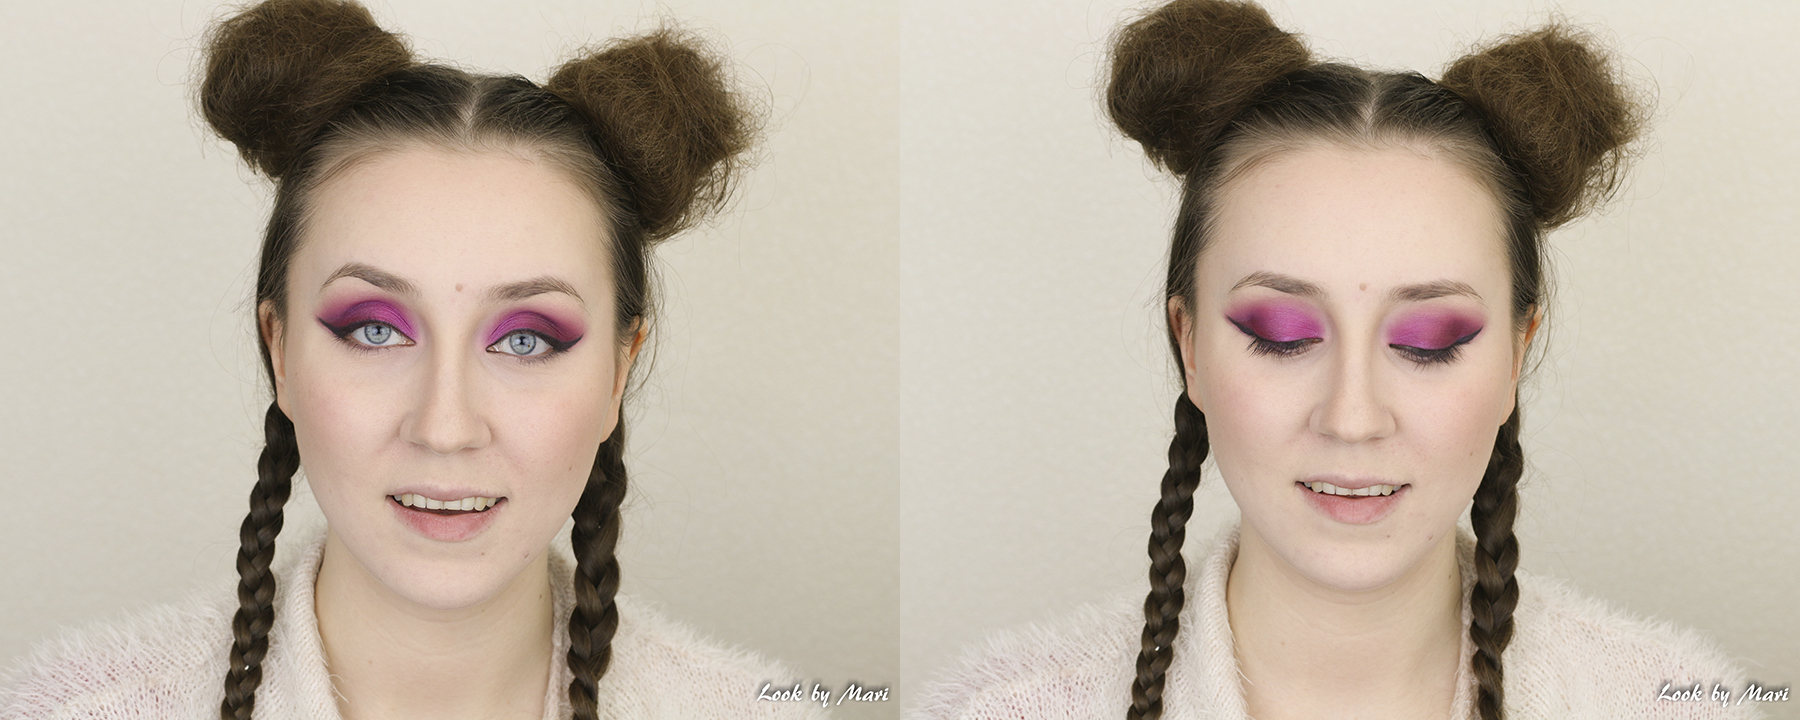 6 pink eye makeup tutorial ideas inspo inspiration blog